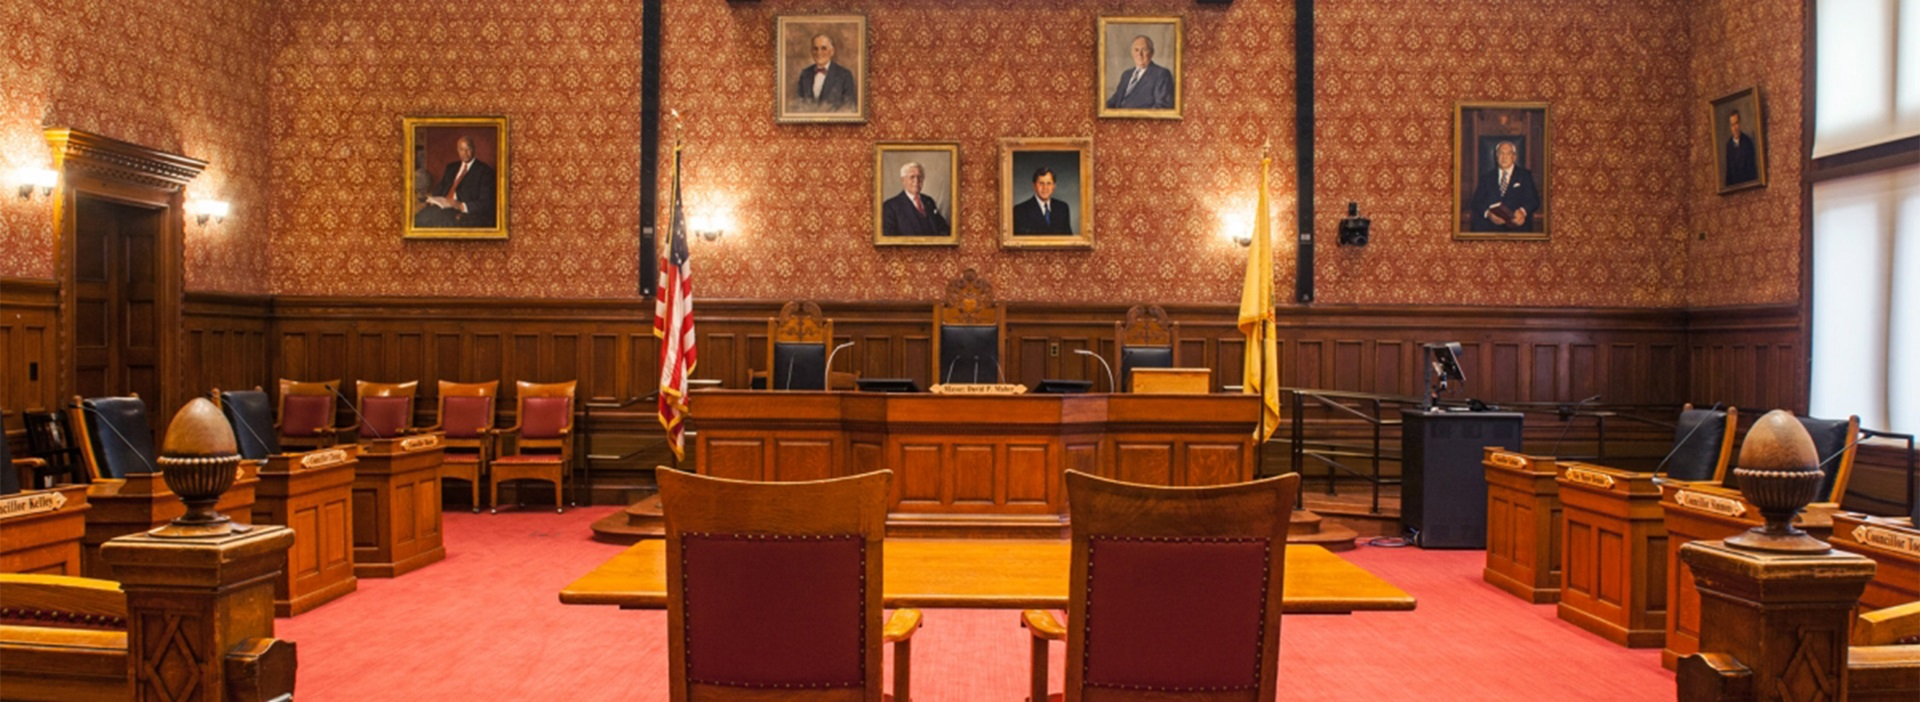 Photo of the Sullivan Chamber in City Hall